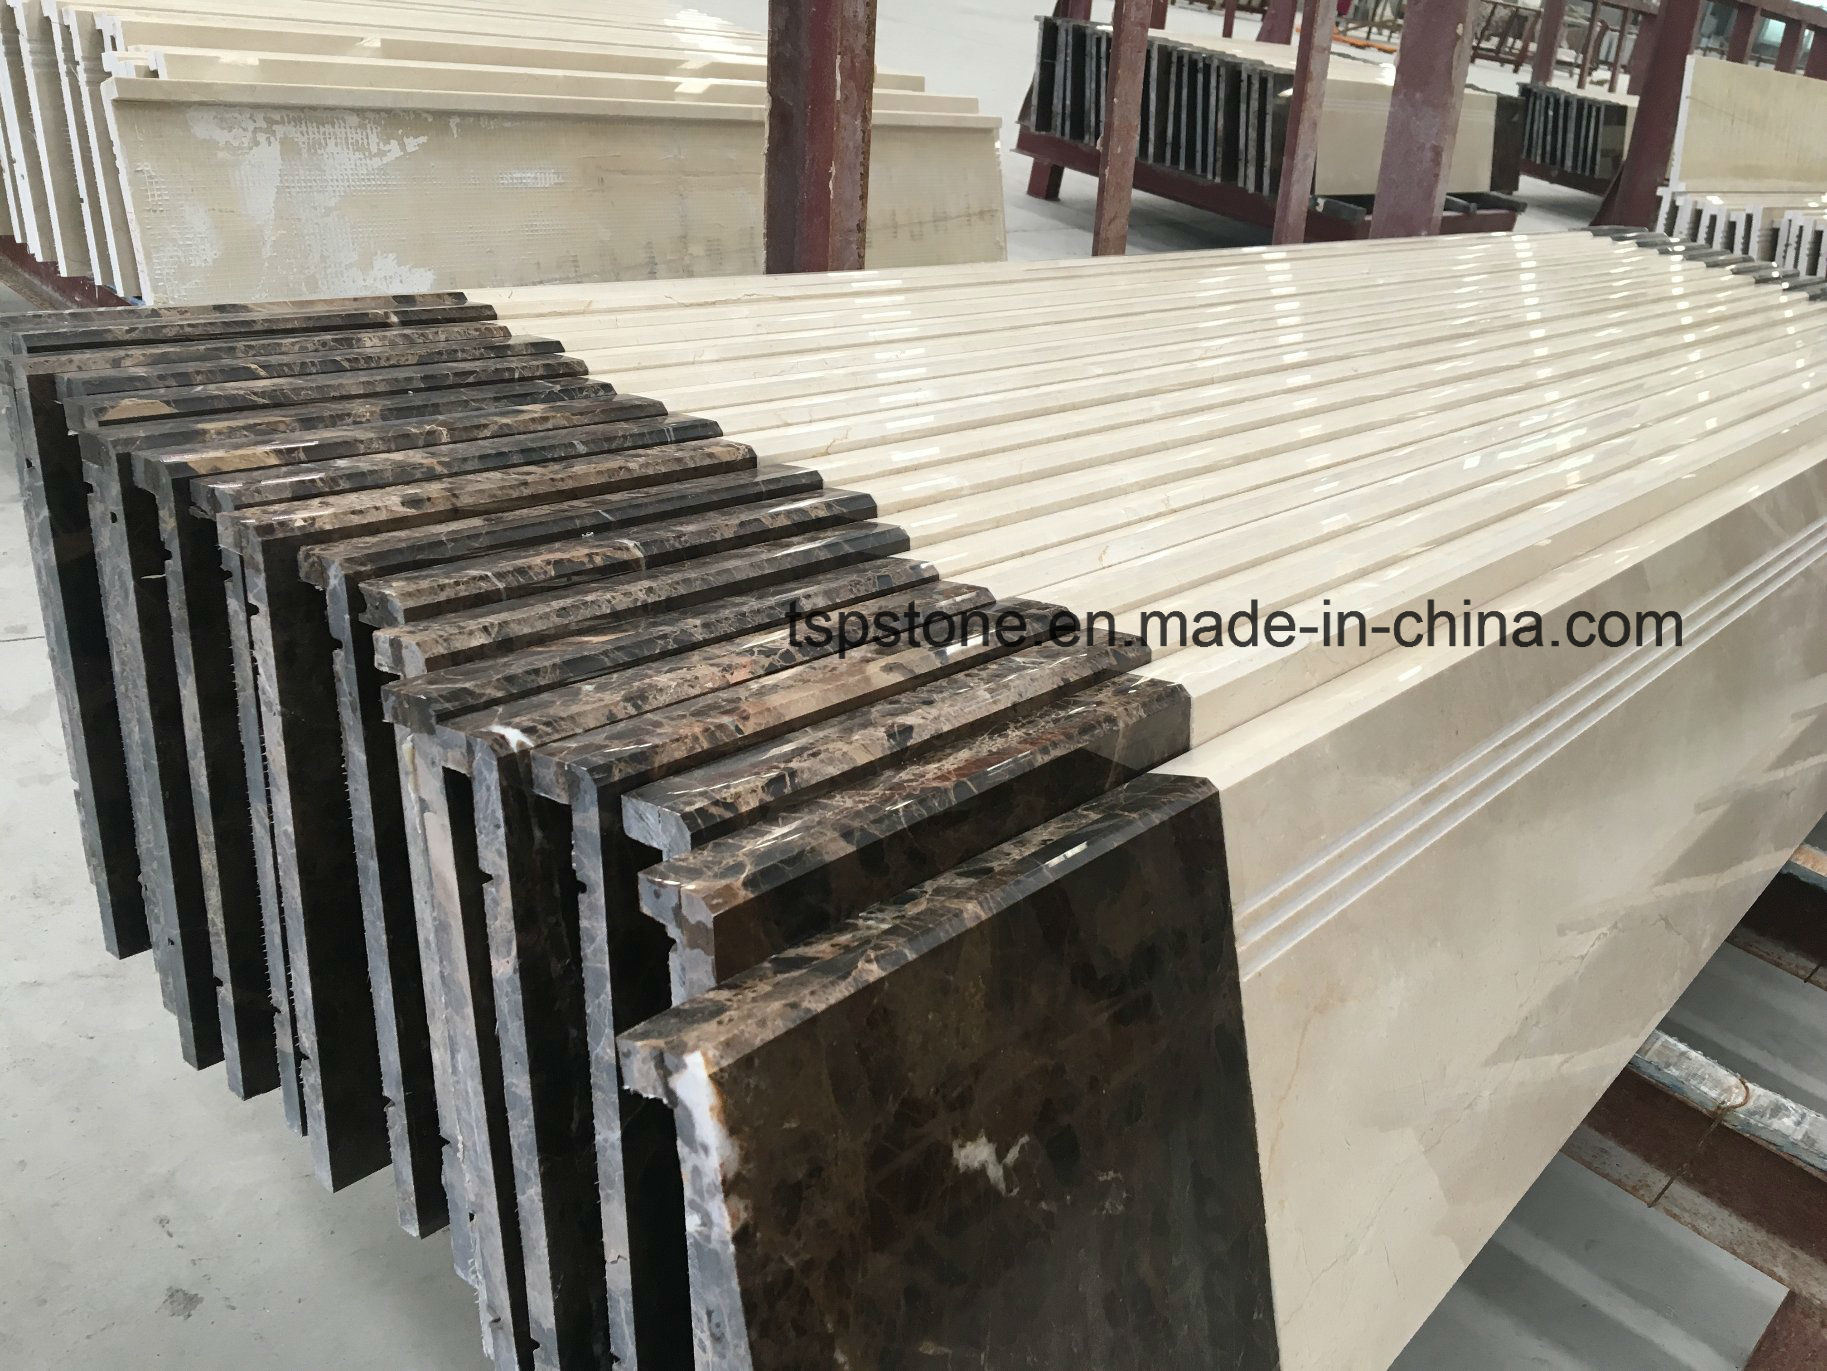 Elegant China Marble Staircase With Marble Stair Tread With Flat Polishing Edge    China Marble Stair, Marble Stair Tread